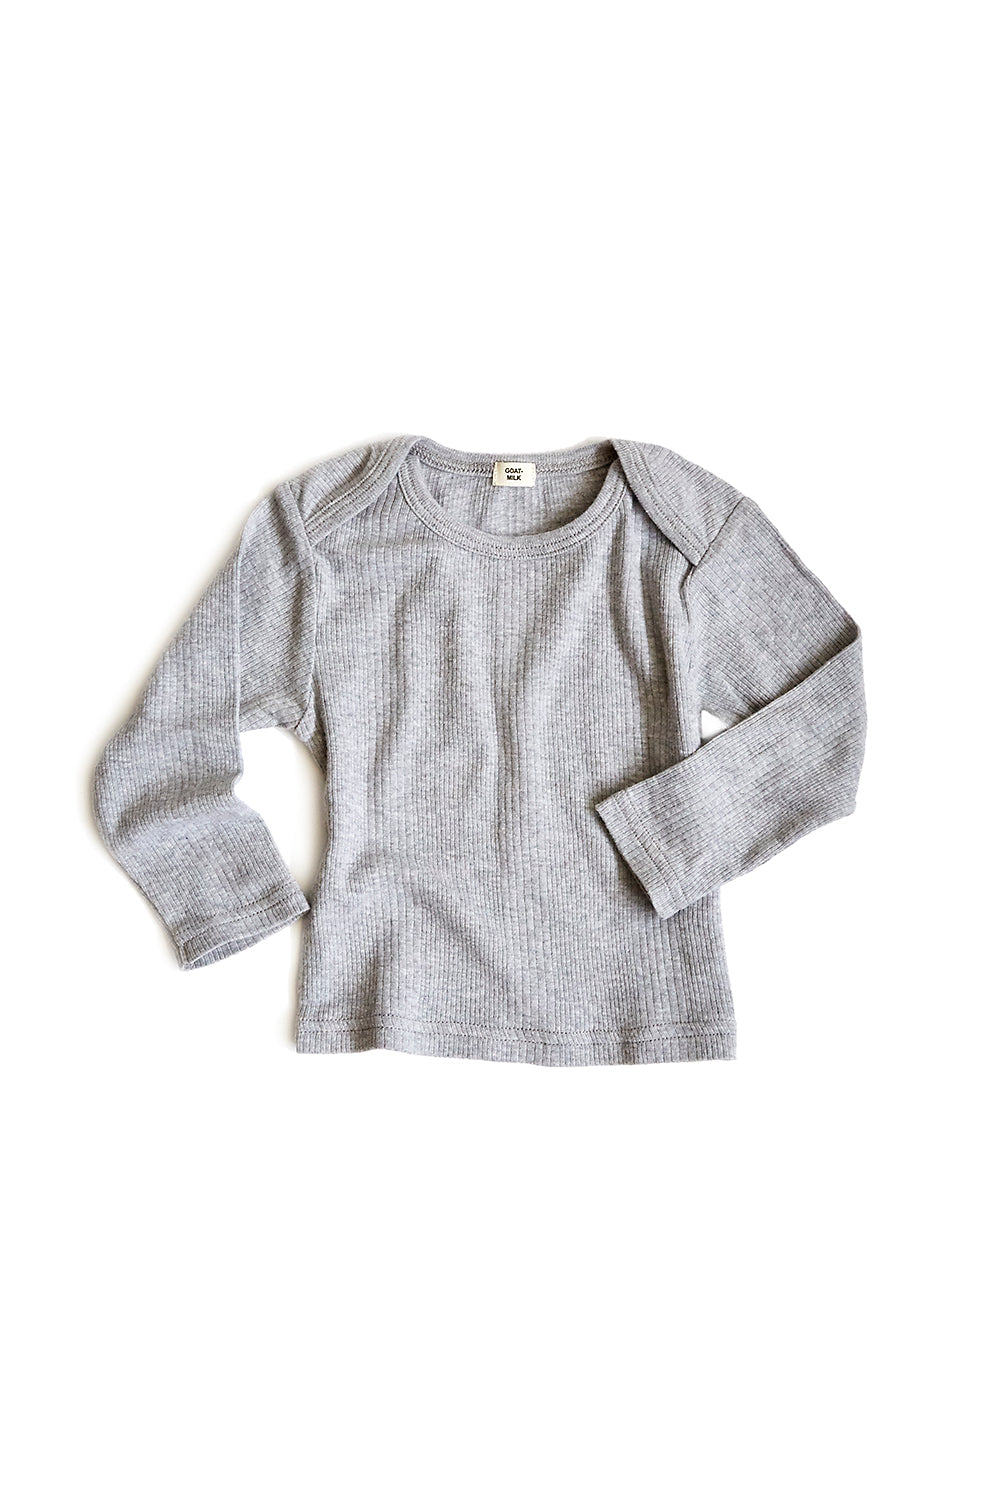 baby thermal top (ribbed)